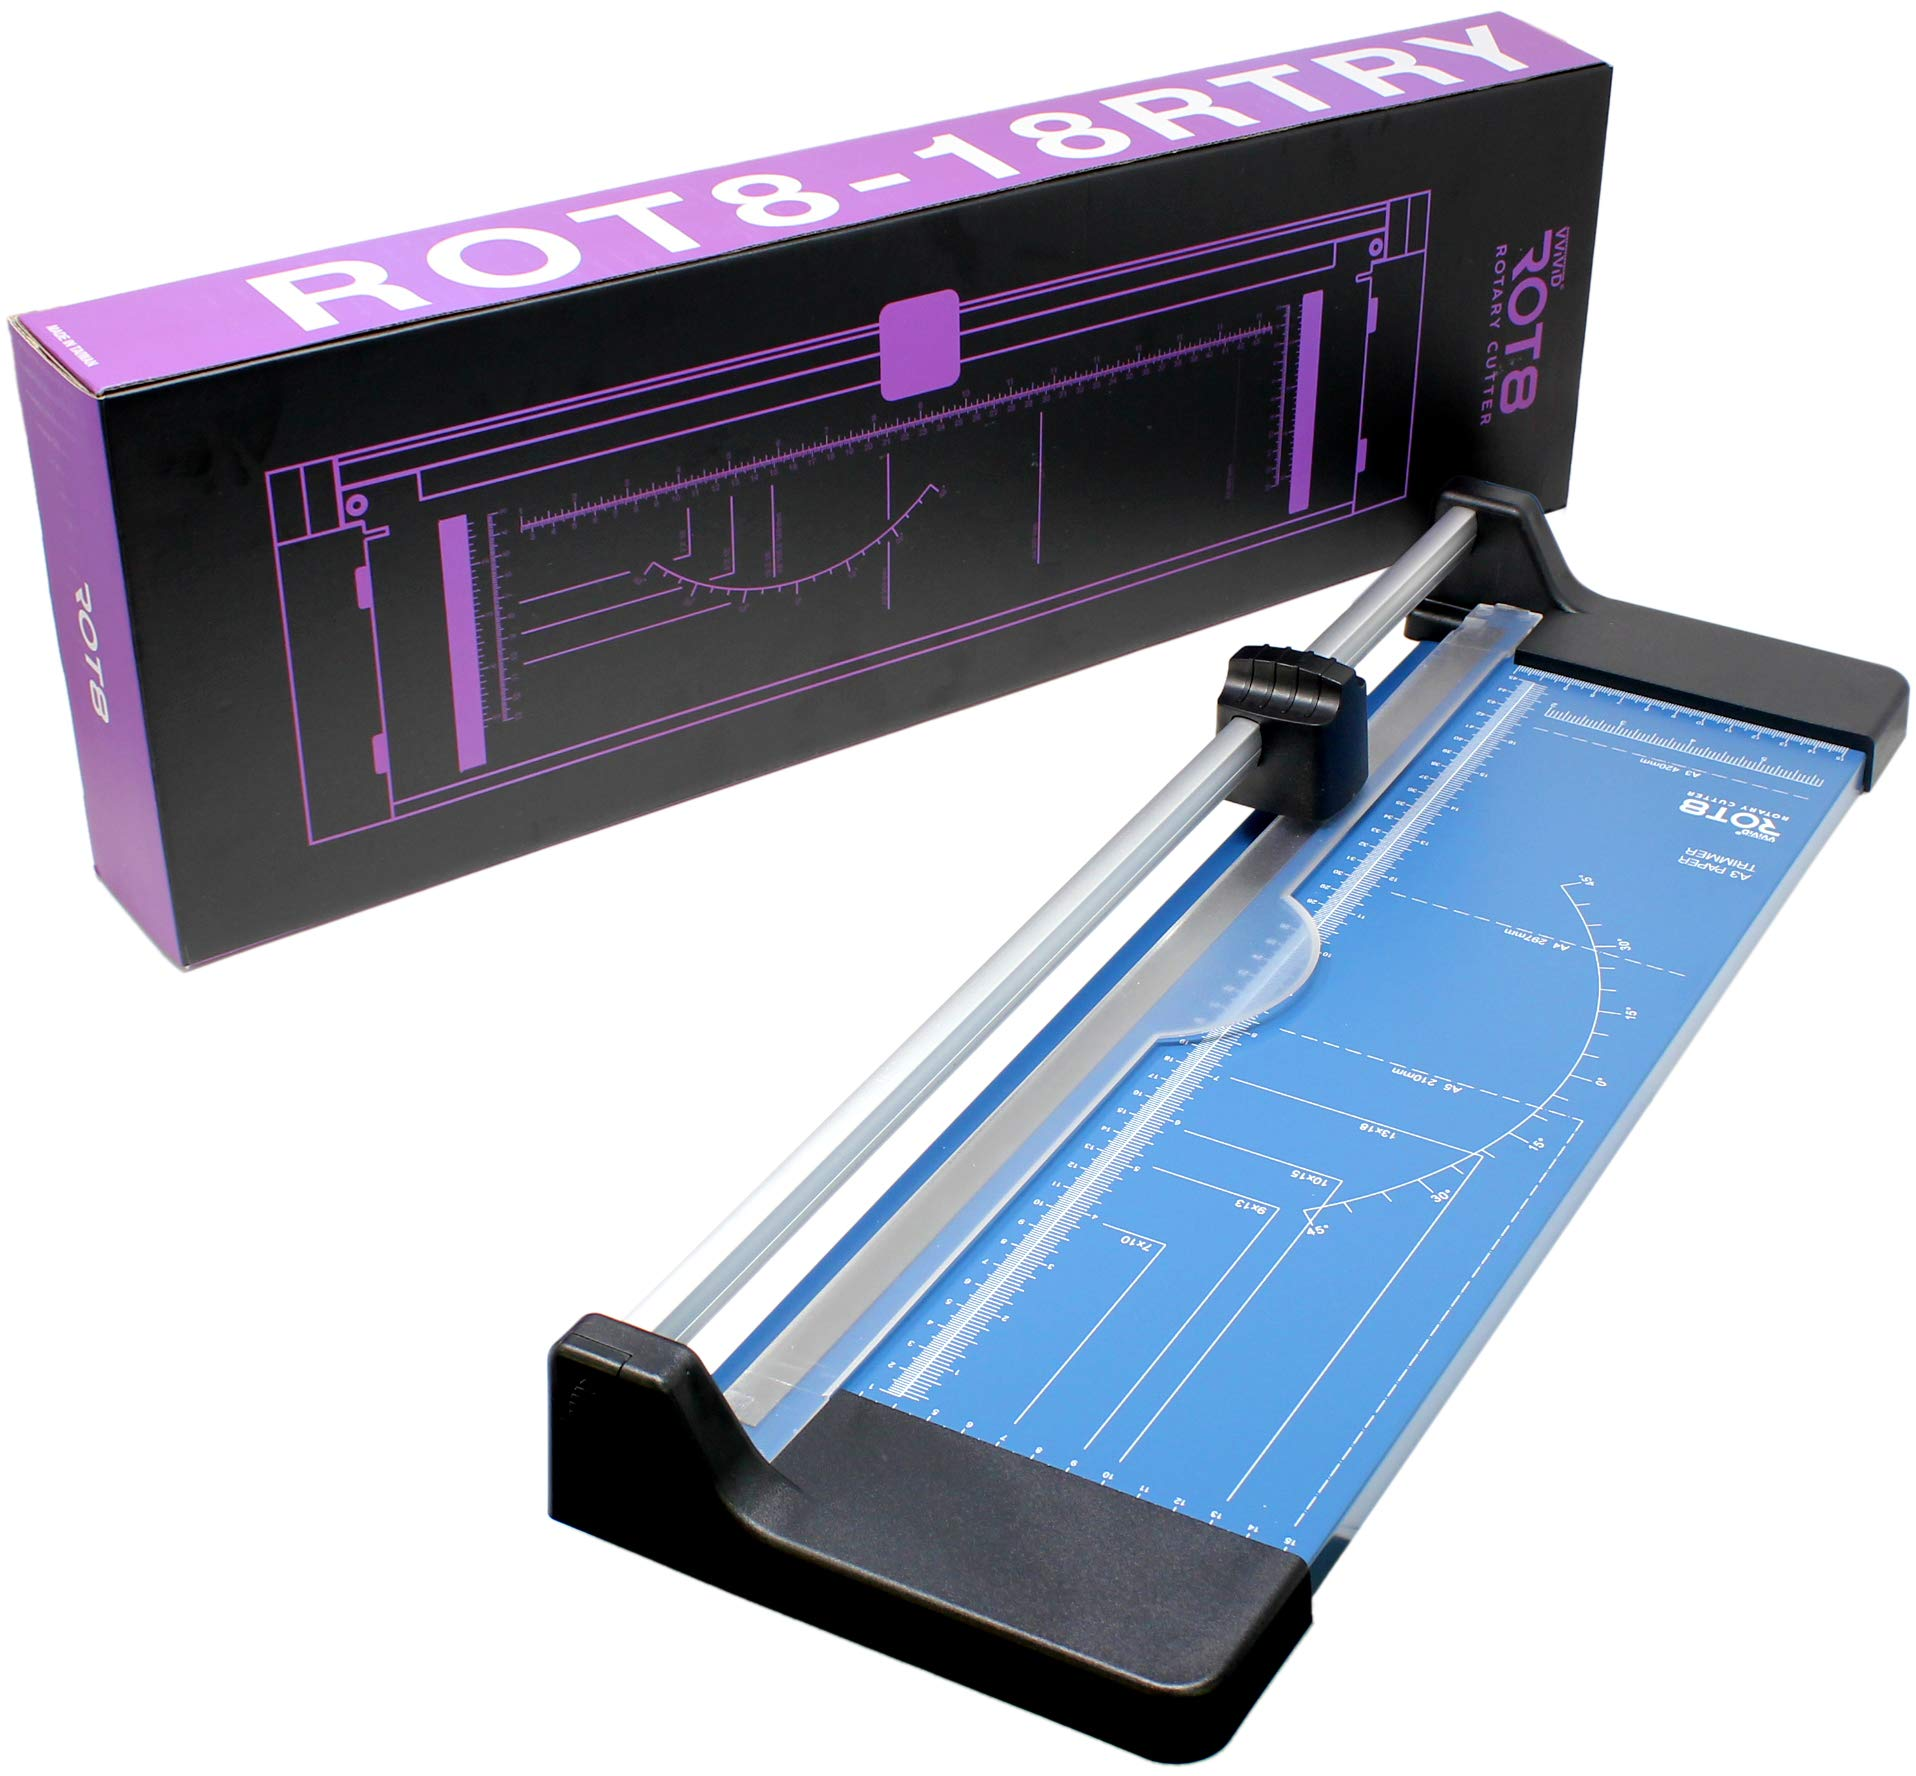 VViViD Rot8 18'' Heavy-Duty Sliding Rotary Paper Cutter and Trimmer